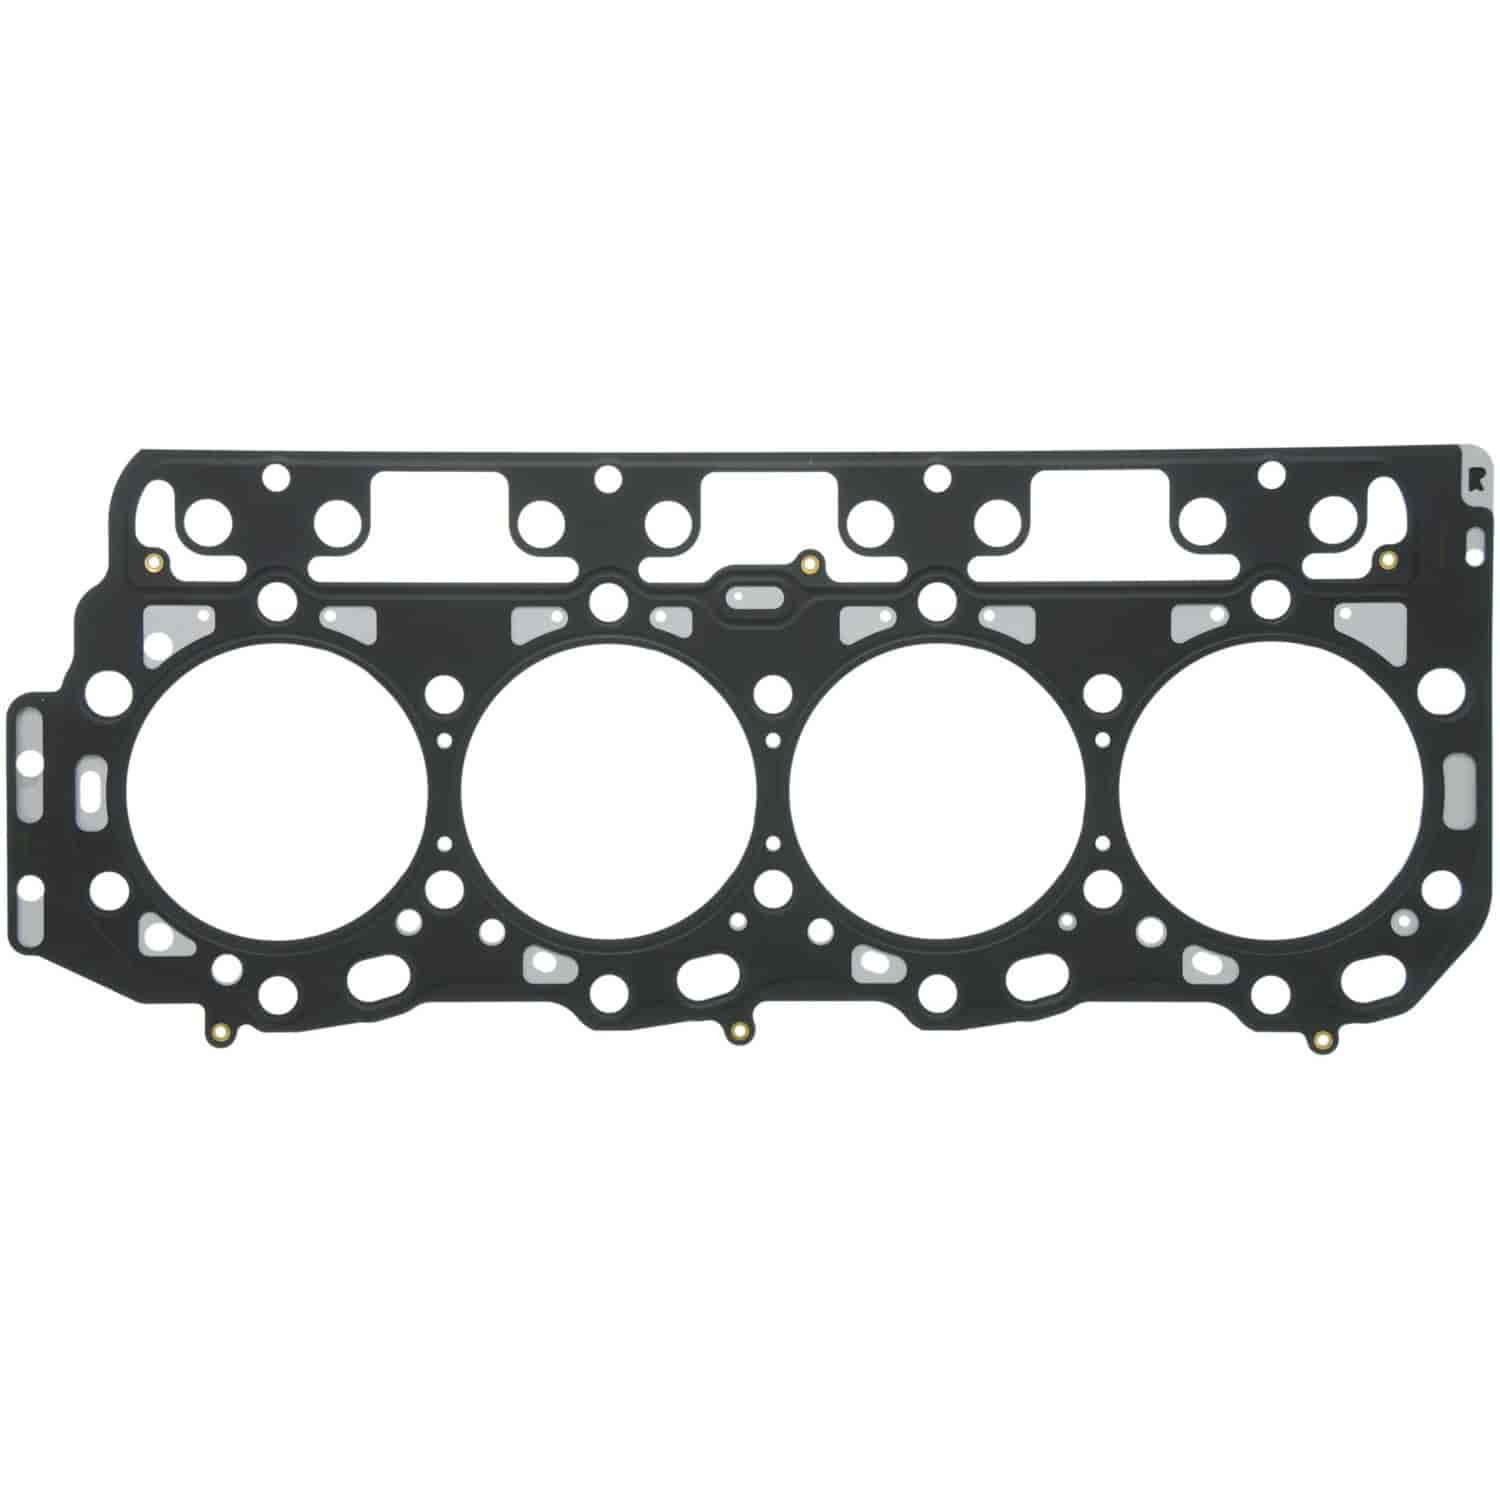 Clevite Mahle Cylinder Head Gasket Chevy